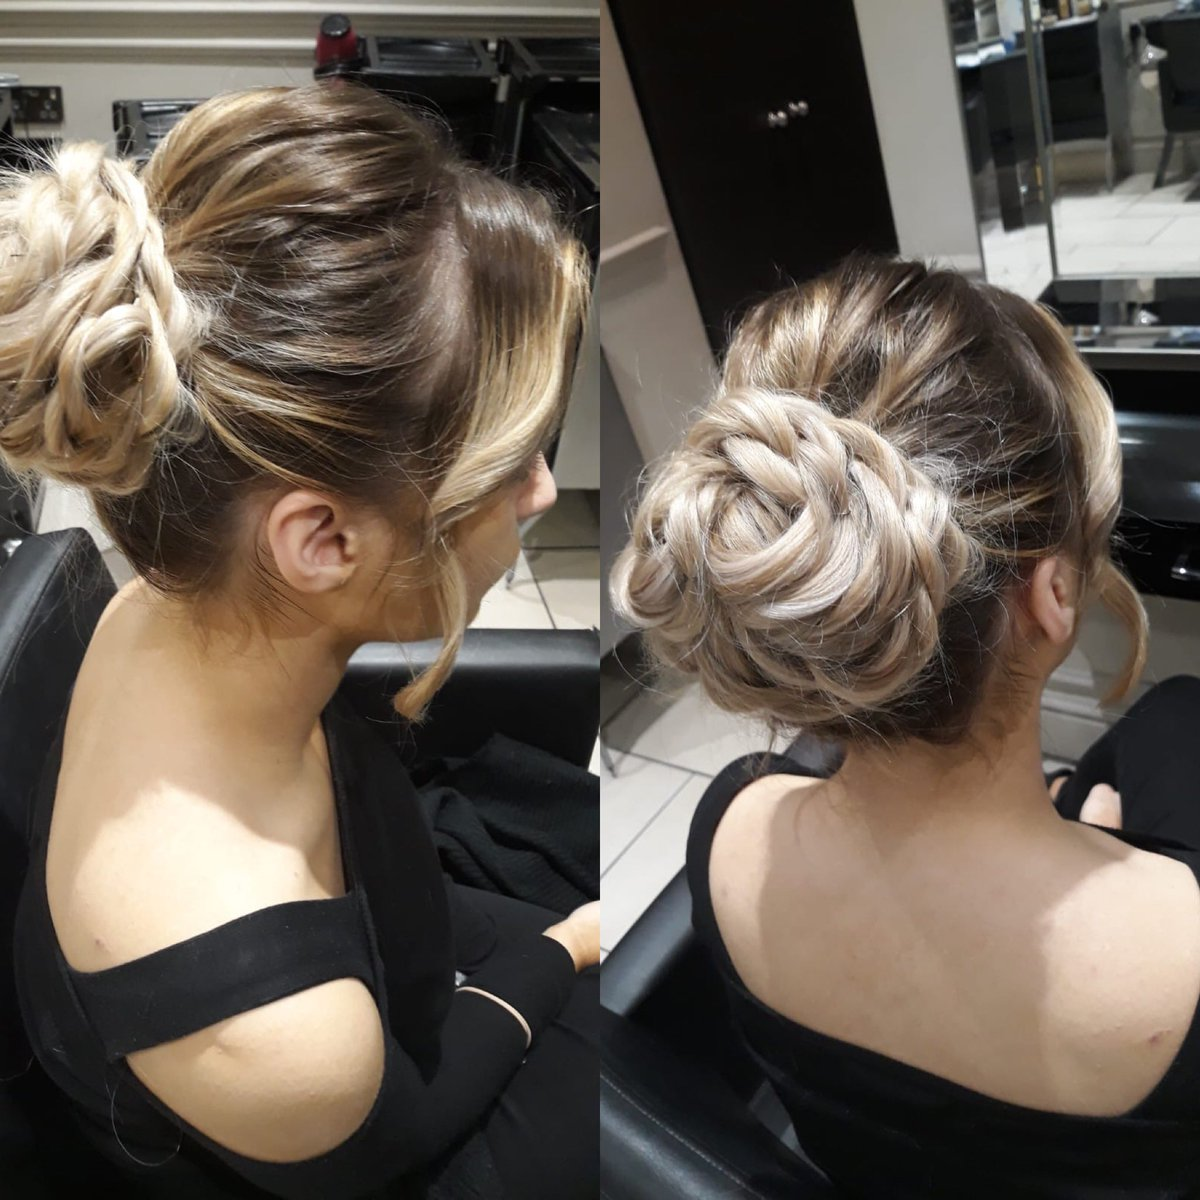 Party Hair By Mirela at  02077514527 #partyhair #hairup #blondehair #blondebayalage #hair #beauty #makeup #chelsea #kingsroadchelsea #london #laserhairremoval #electrolysis #massage